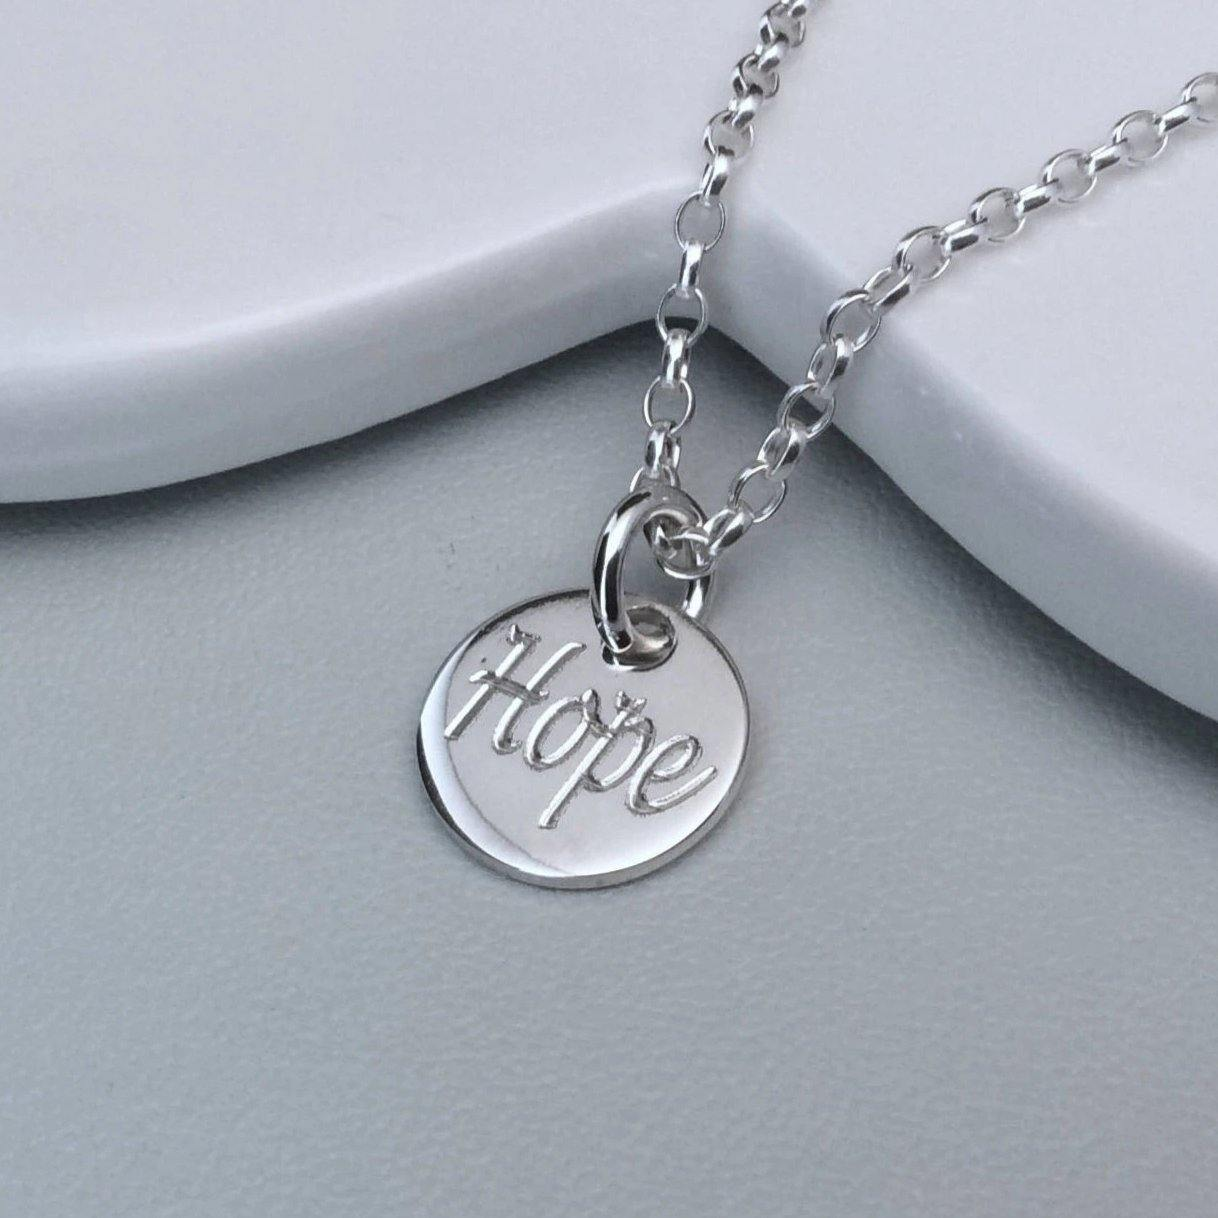 Quote necklace - Hope - gift of encouragement, 12mm